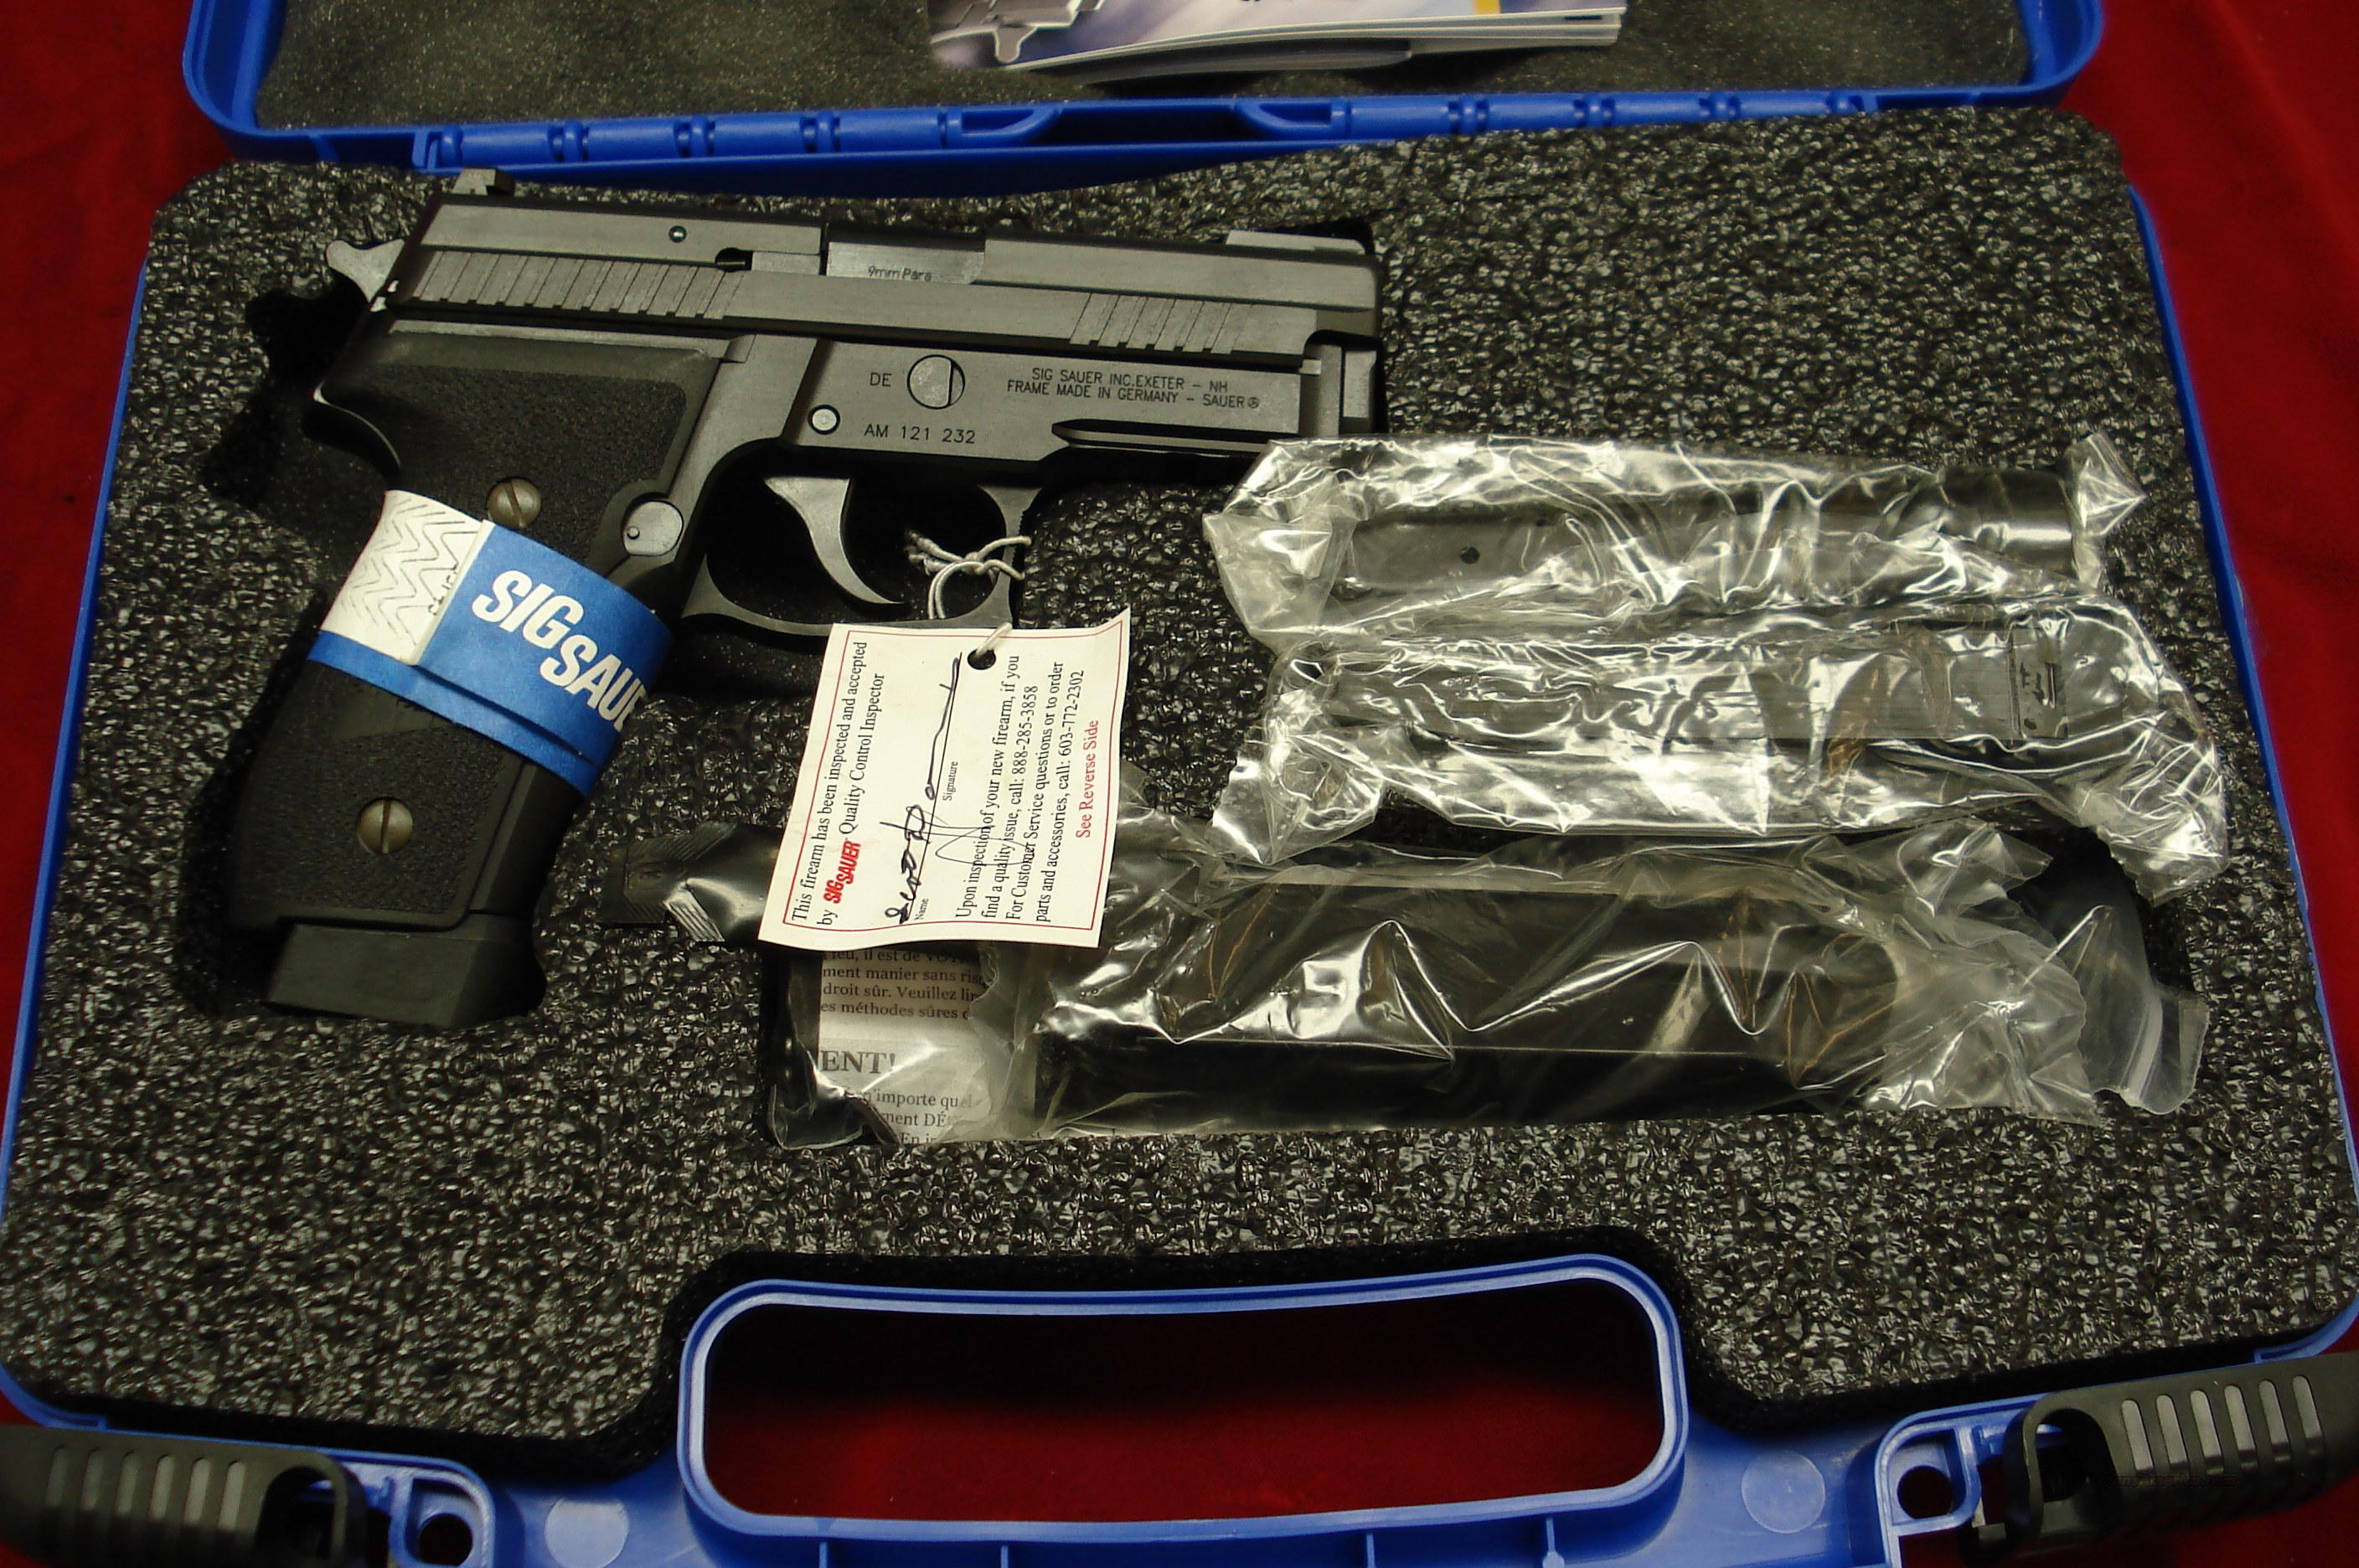 SIG SAUER P229 W/FOUR 18 ROUND MAGS. 9MM WITH NIGHT SIGHTS NEW  Guns > Pistols > Sig - Sauer/Sigarms Pistols > P229